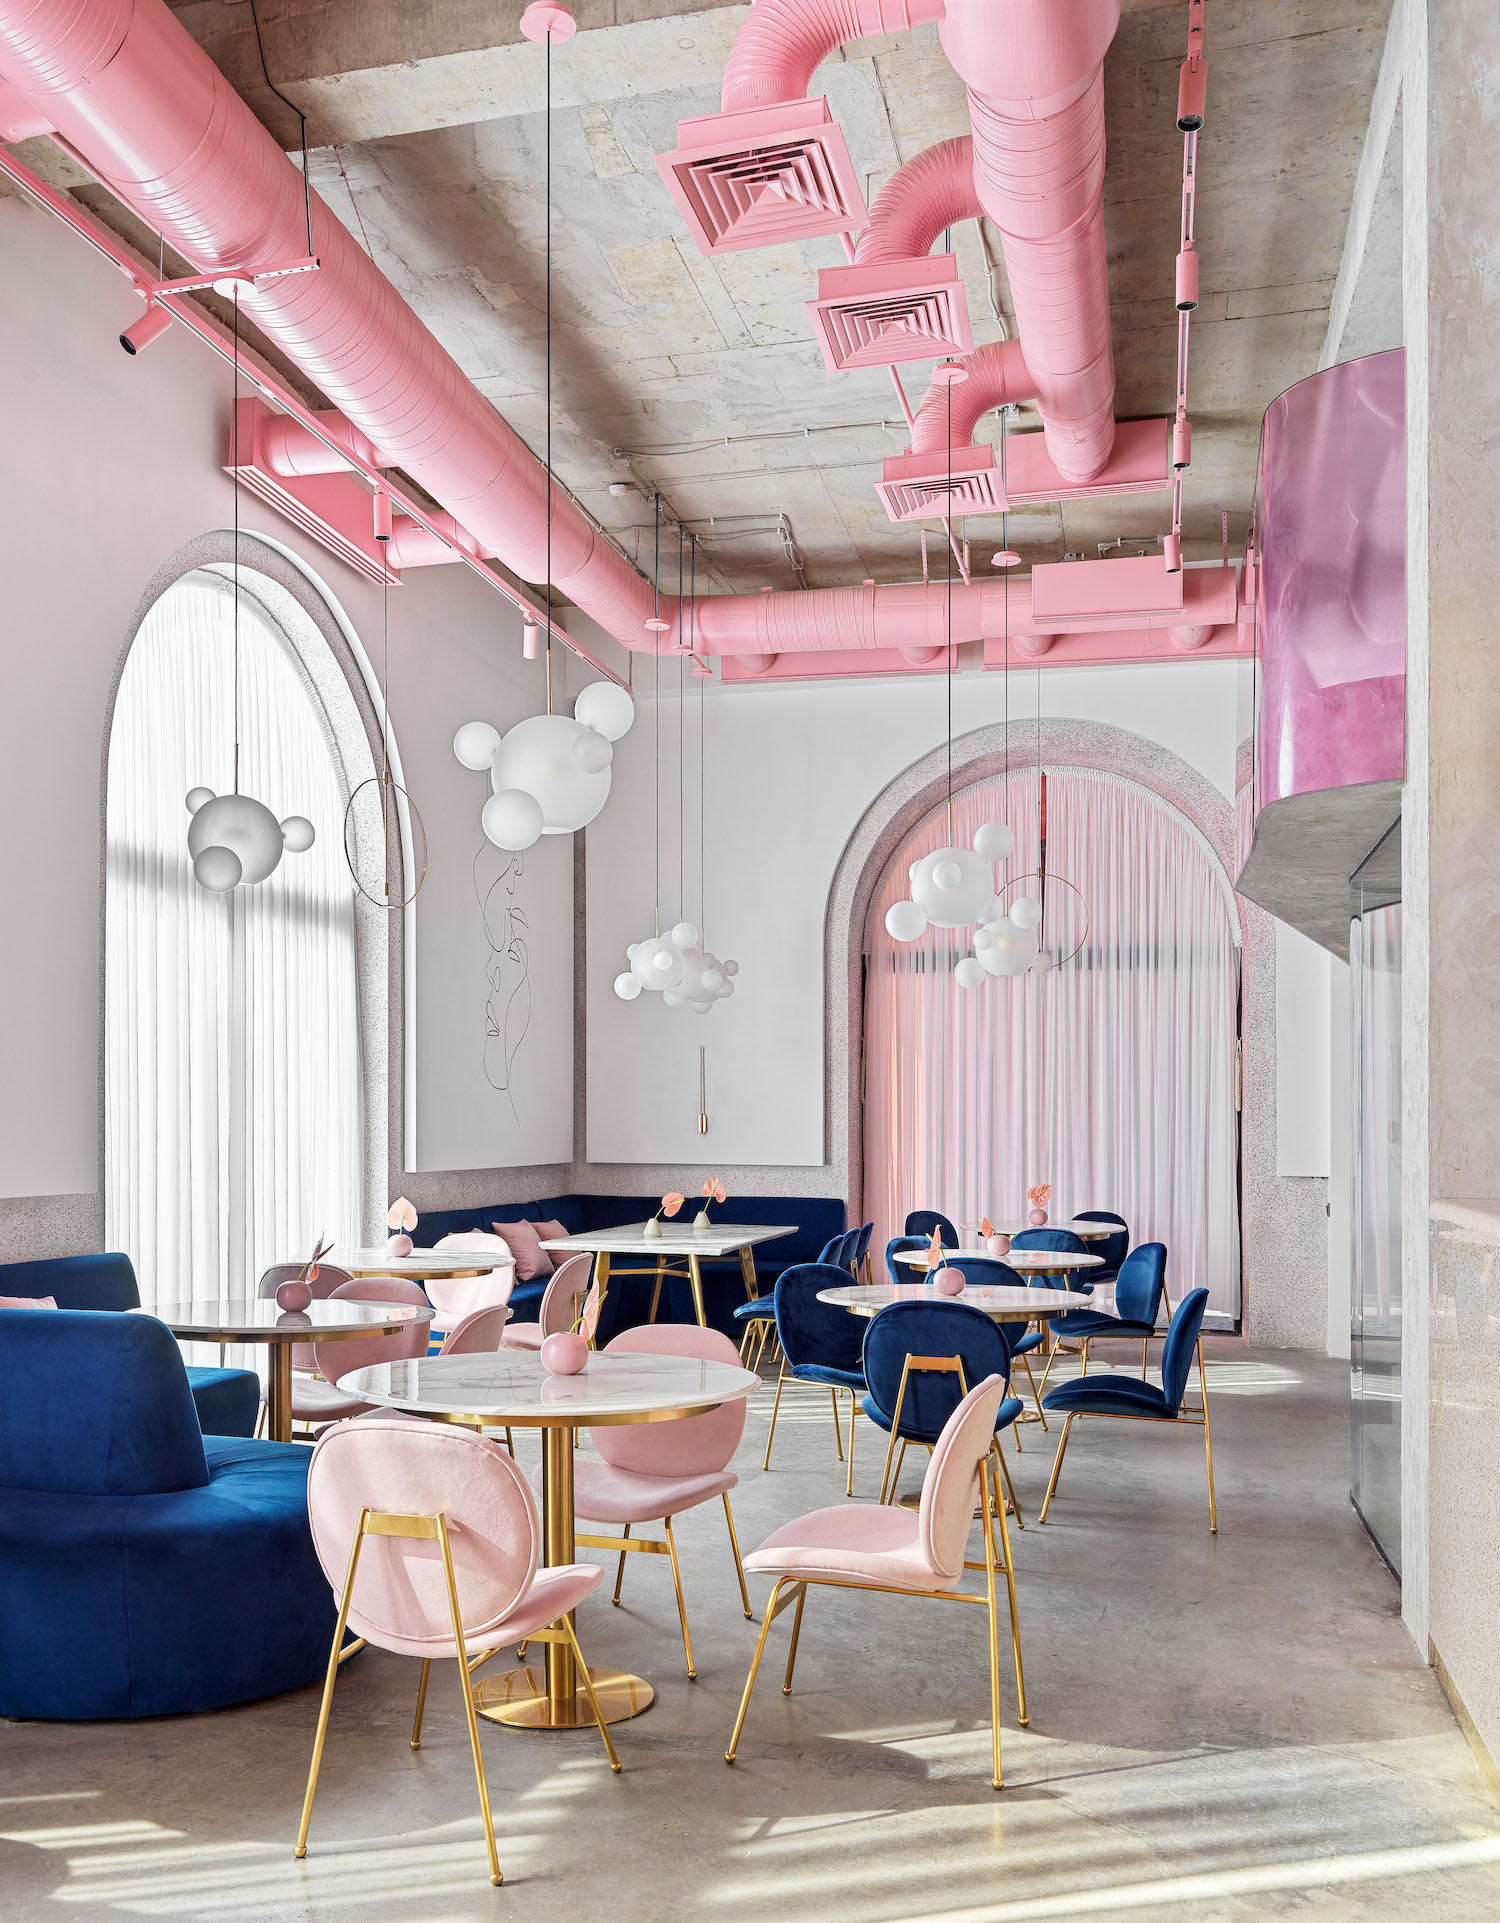 pink pipes in the ceiling